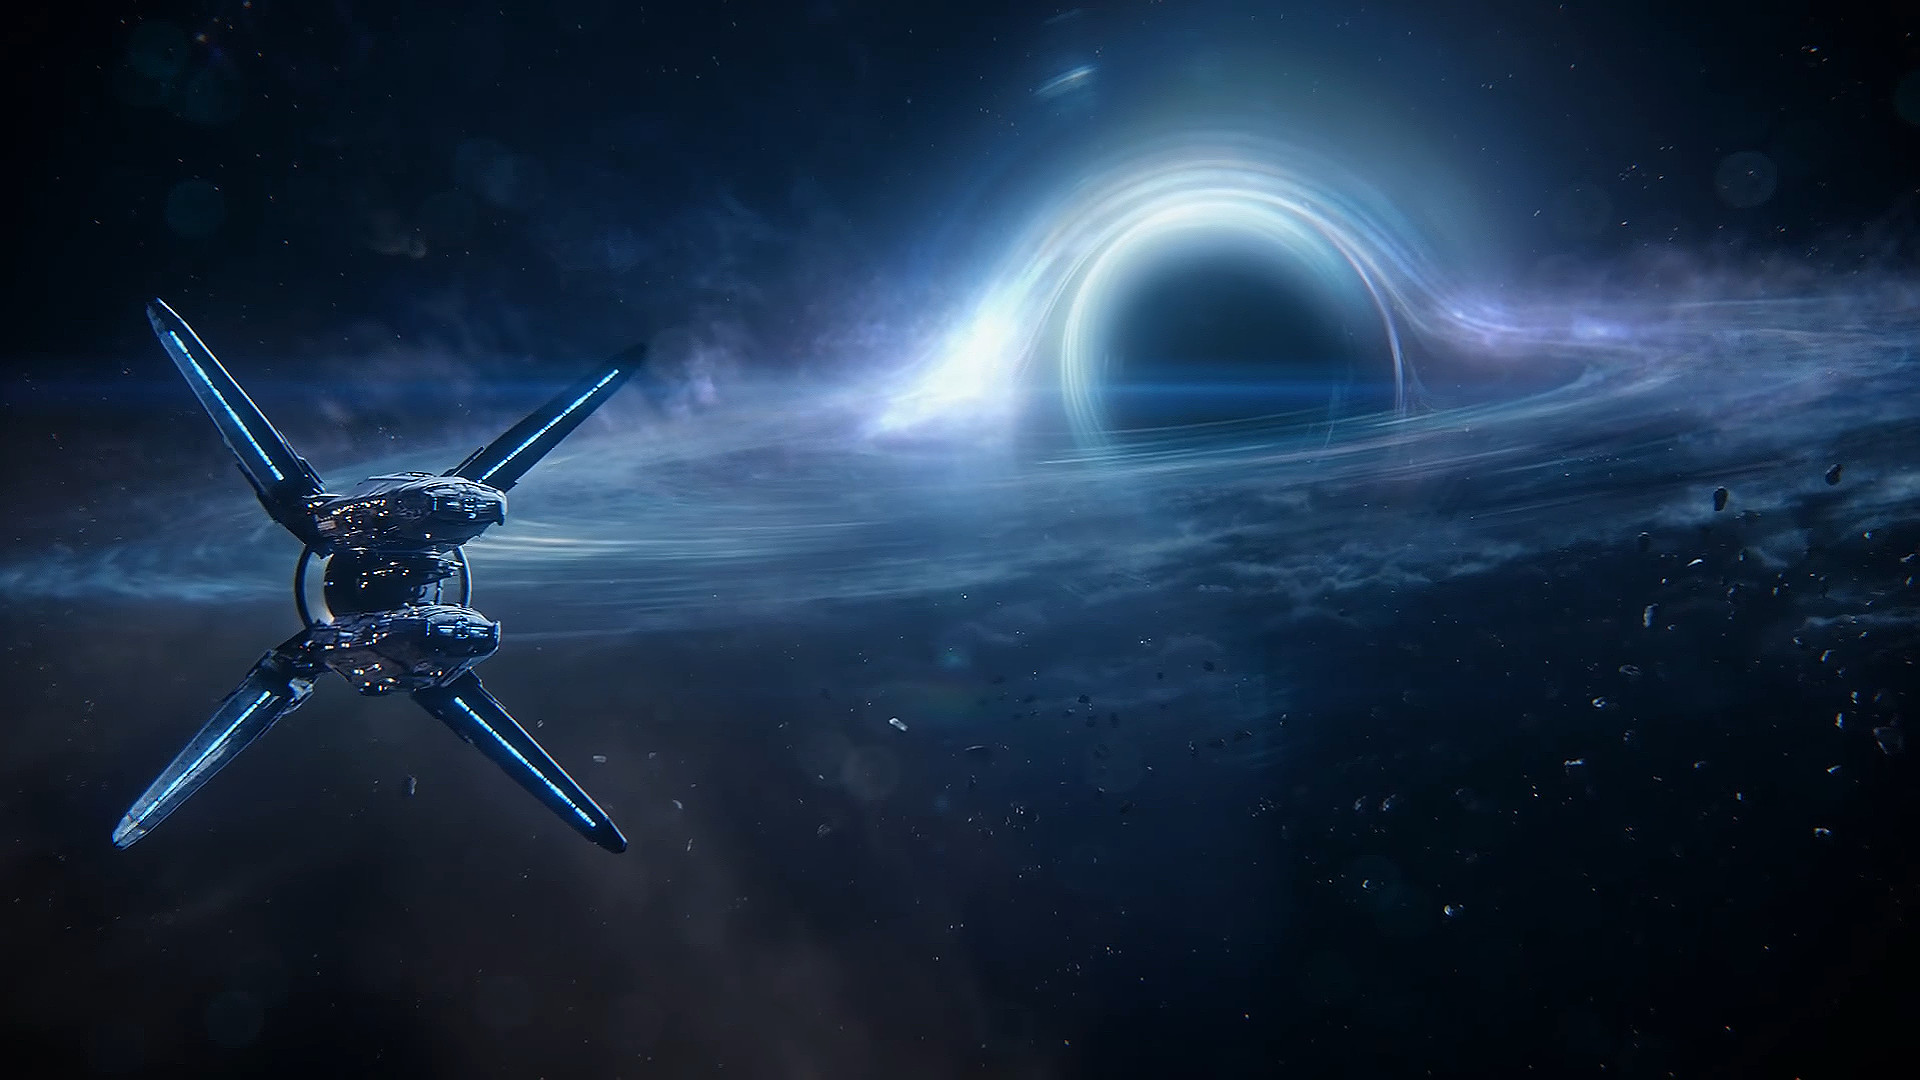 Mass Effect Space Wallpaper (74+ Images